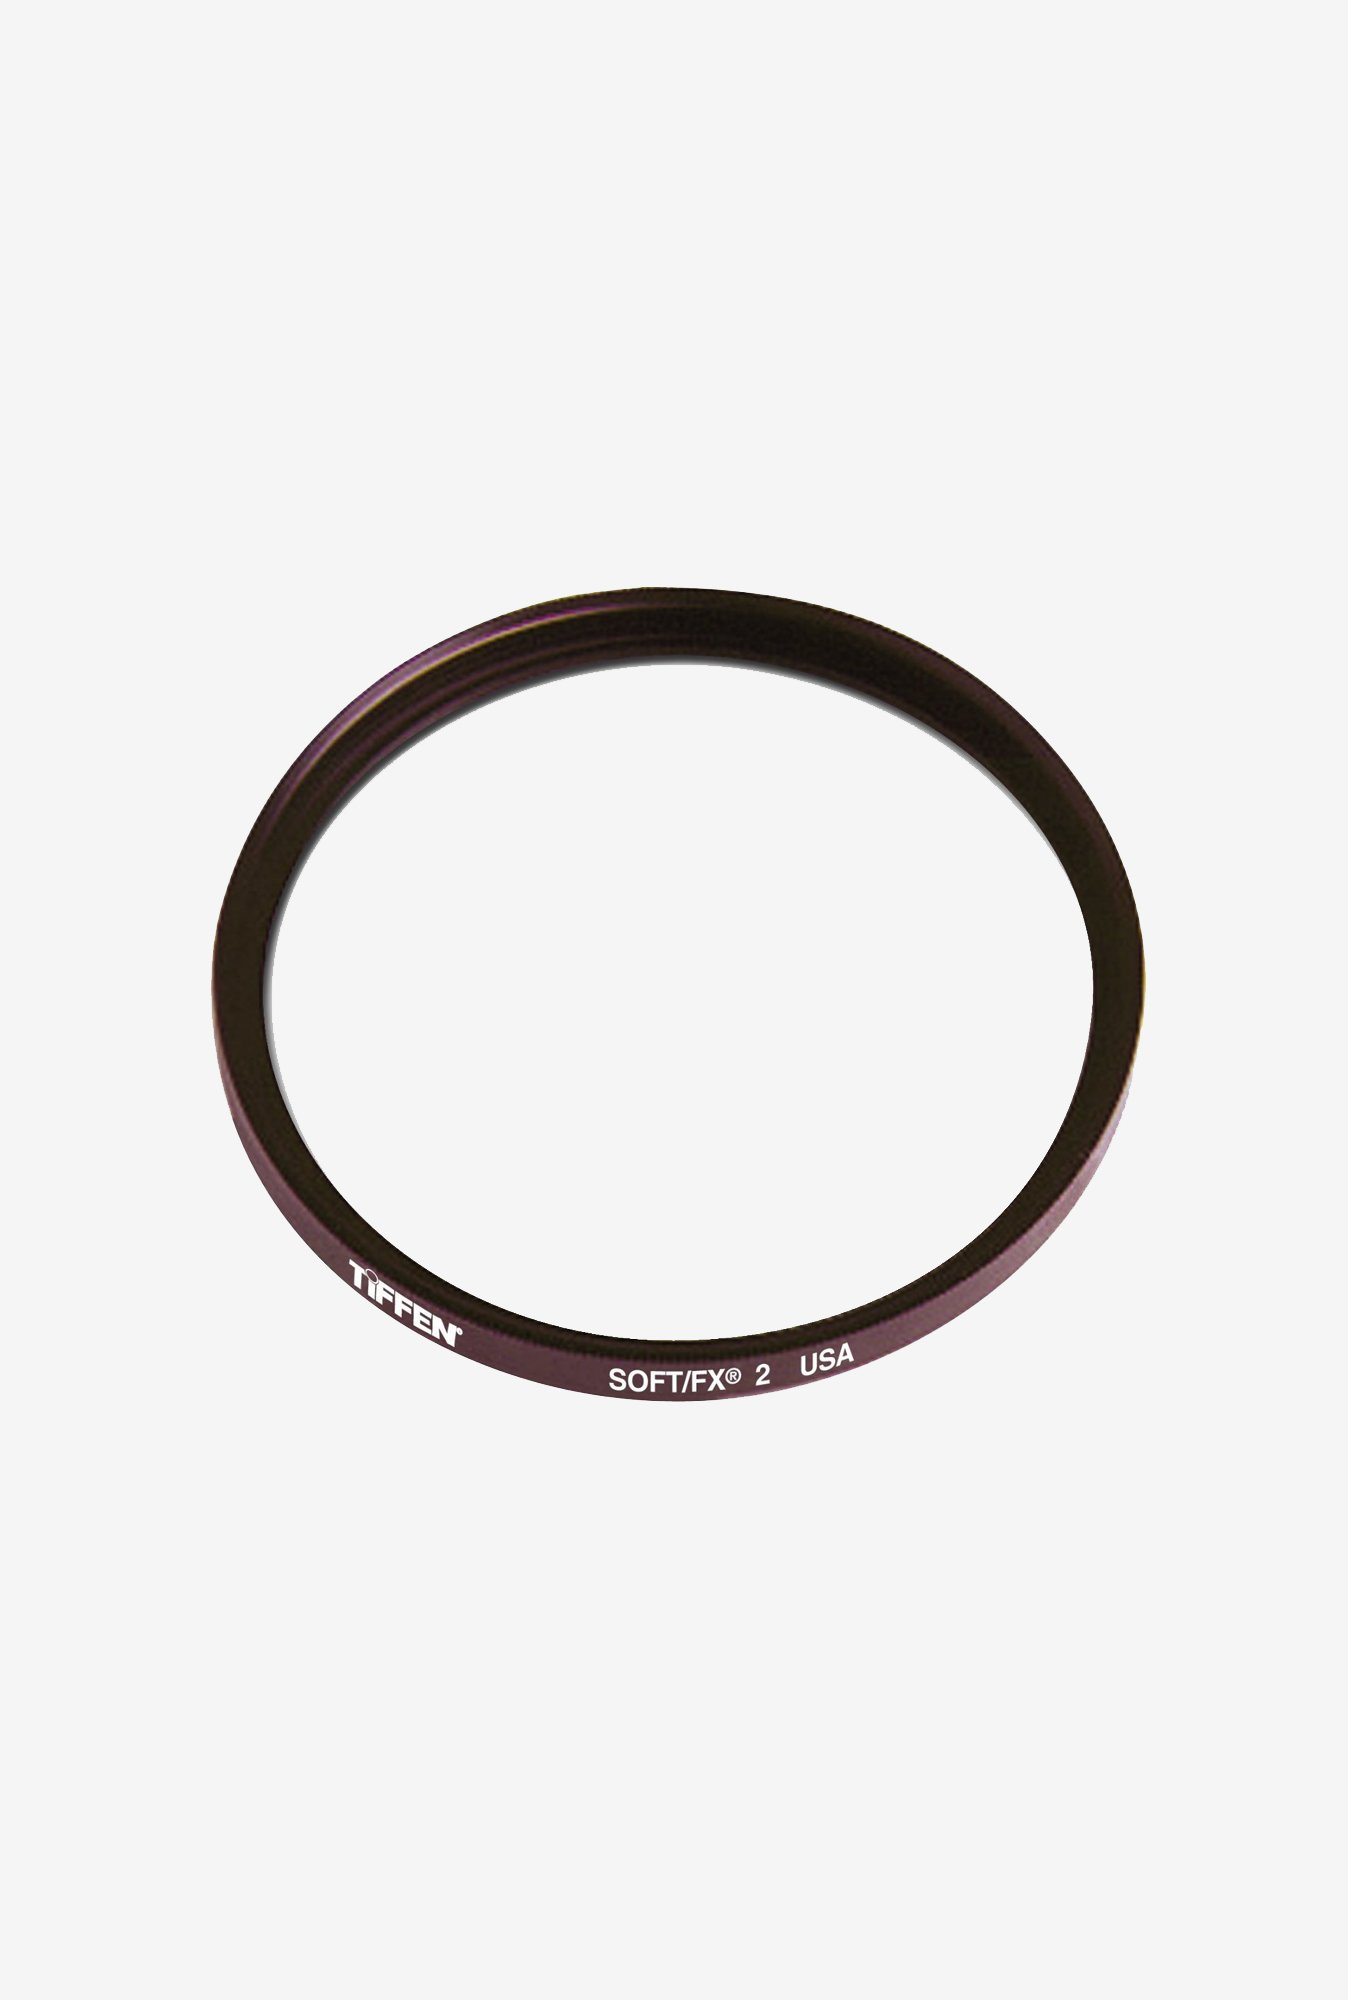 Tiffen 46SFX2 46mm Soft/FX 2 Filter (Black)